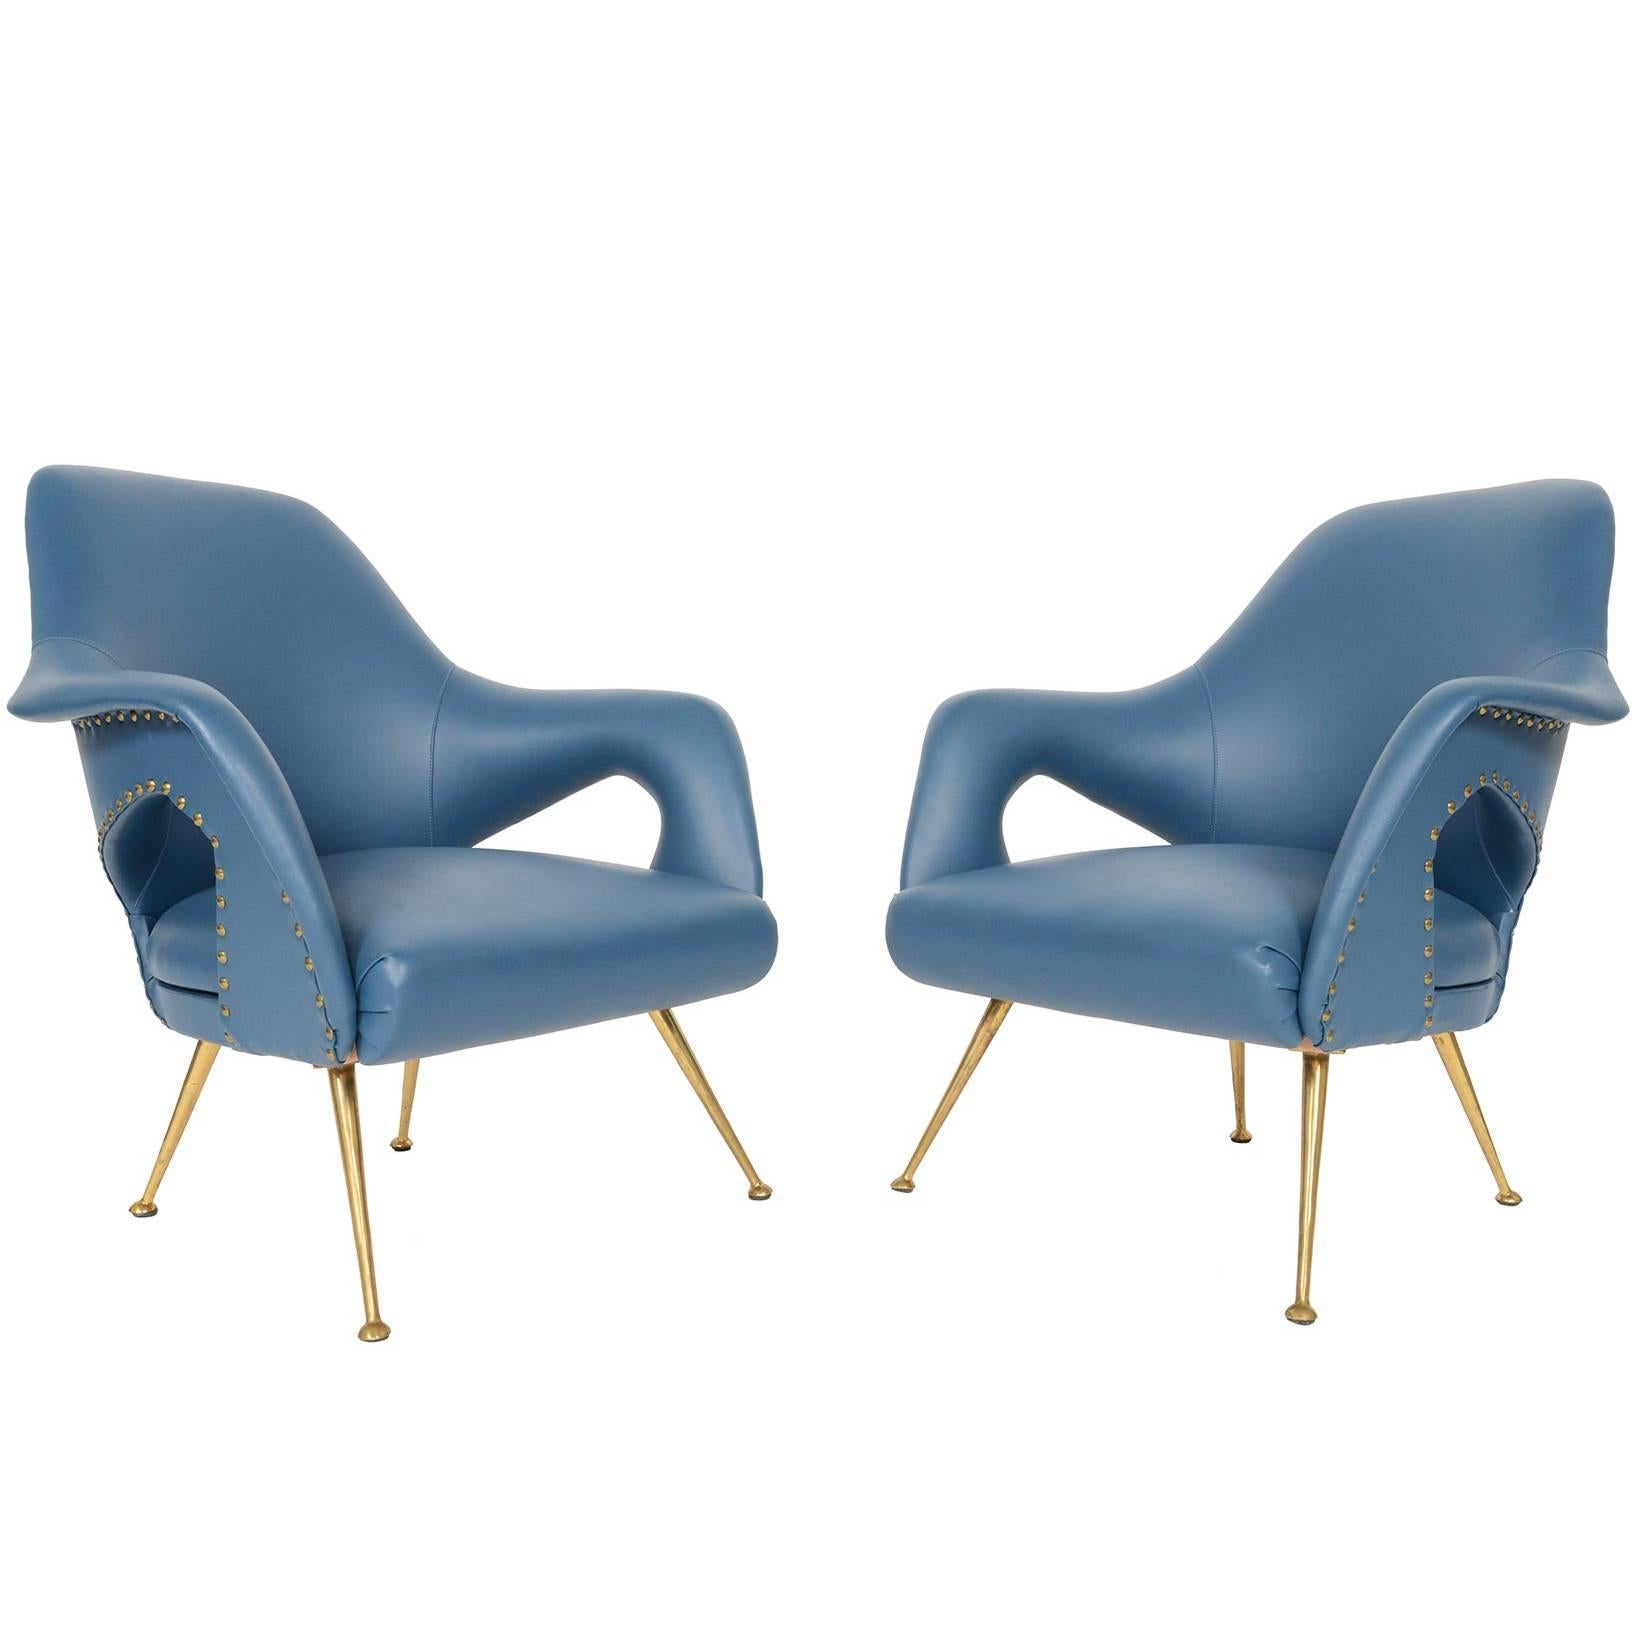 Pair Of Italian Modern Lounge Chairs In Blue Vinyl For Sale